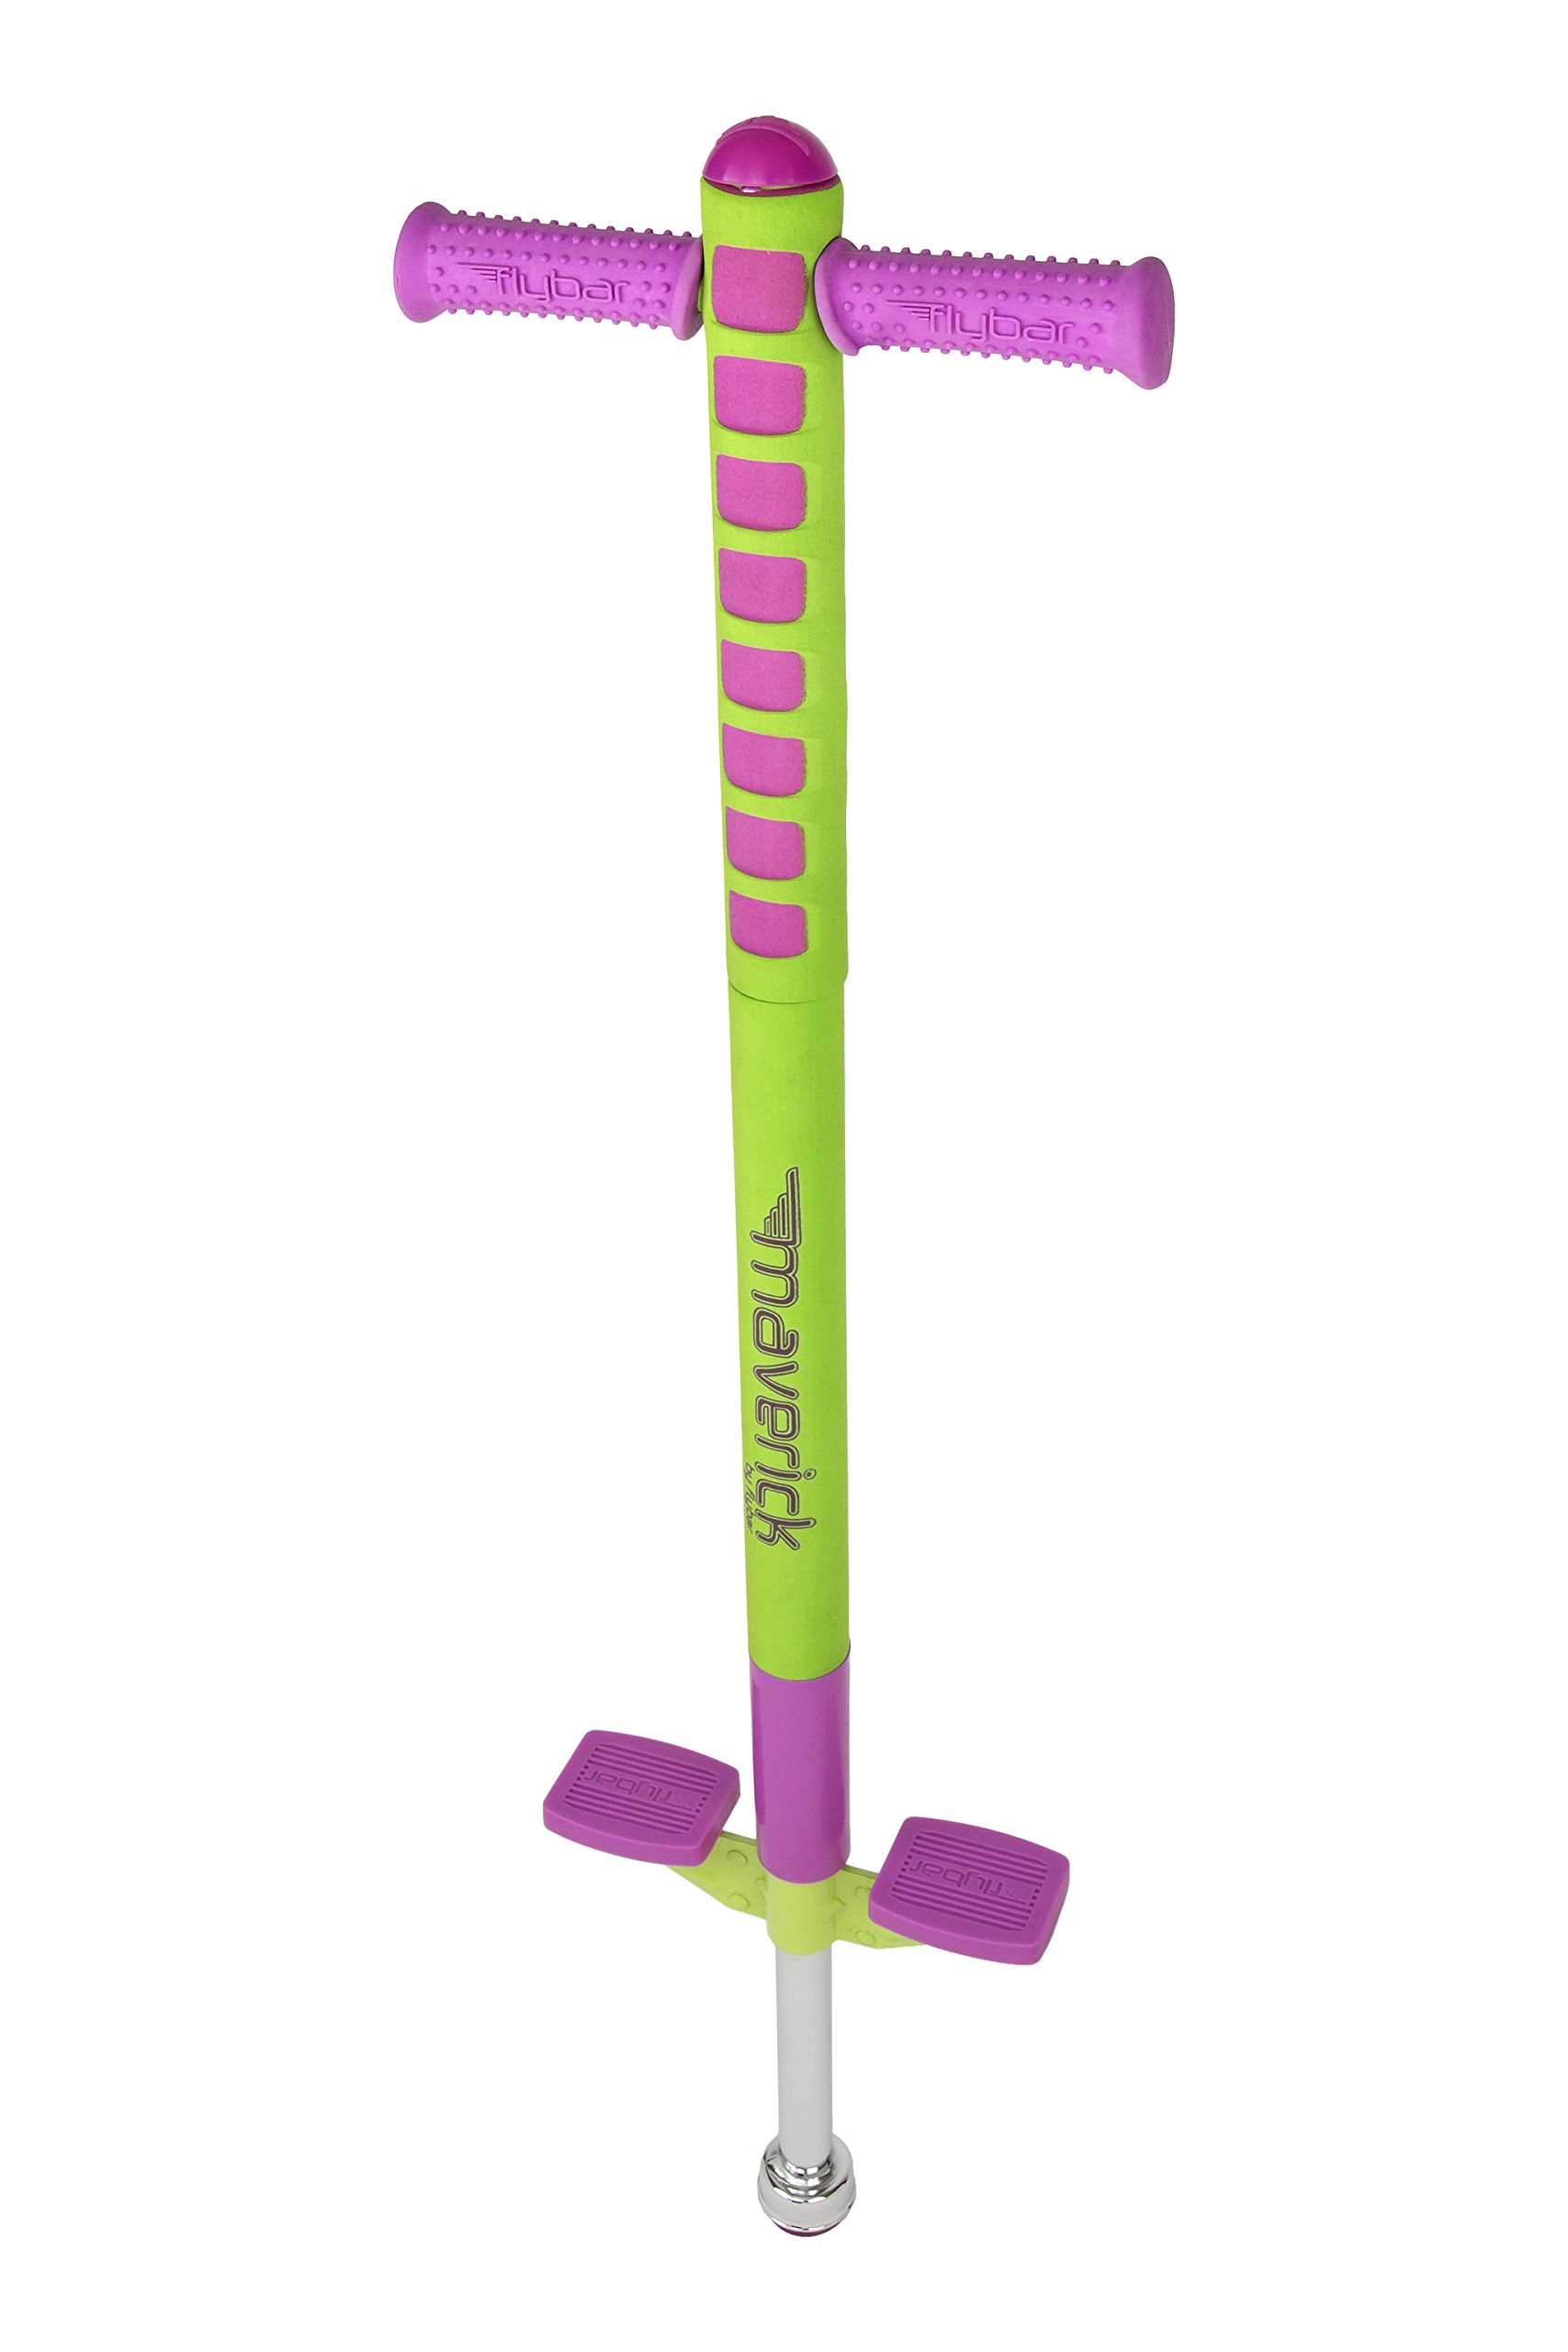 Flybar Limited Edition Foam Maverick Pogo Stick for Kids - Two New Colors & New Rubber Hand Grips